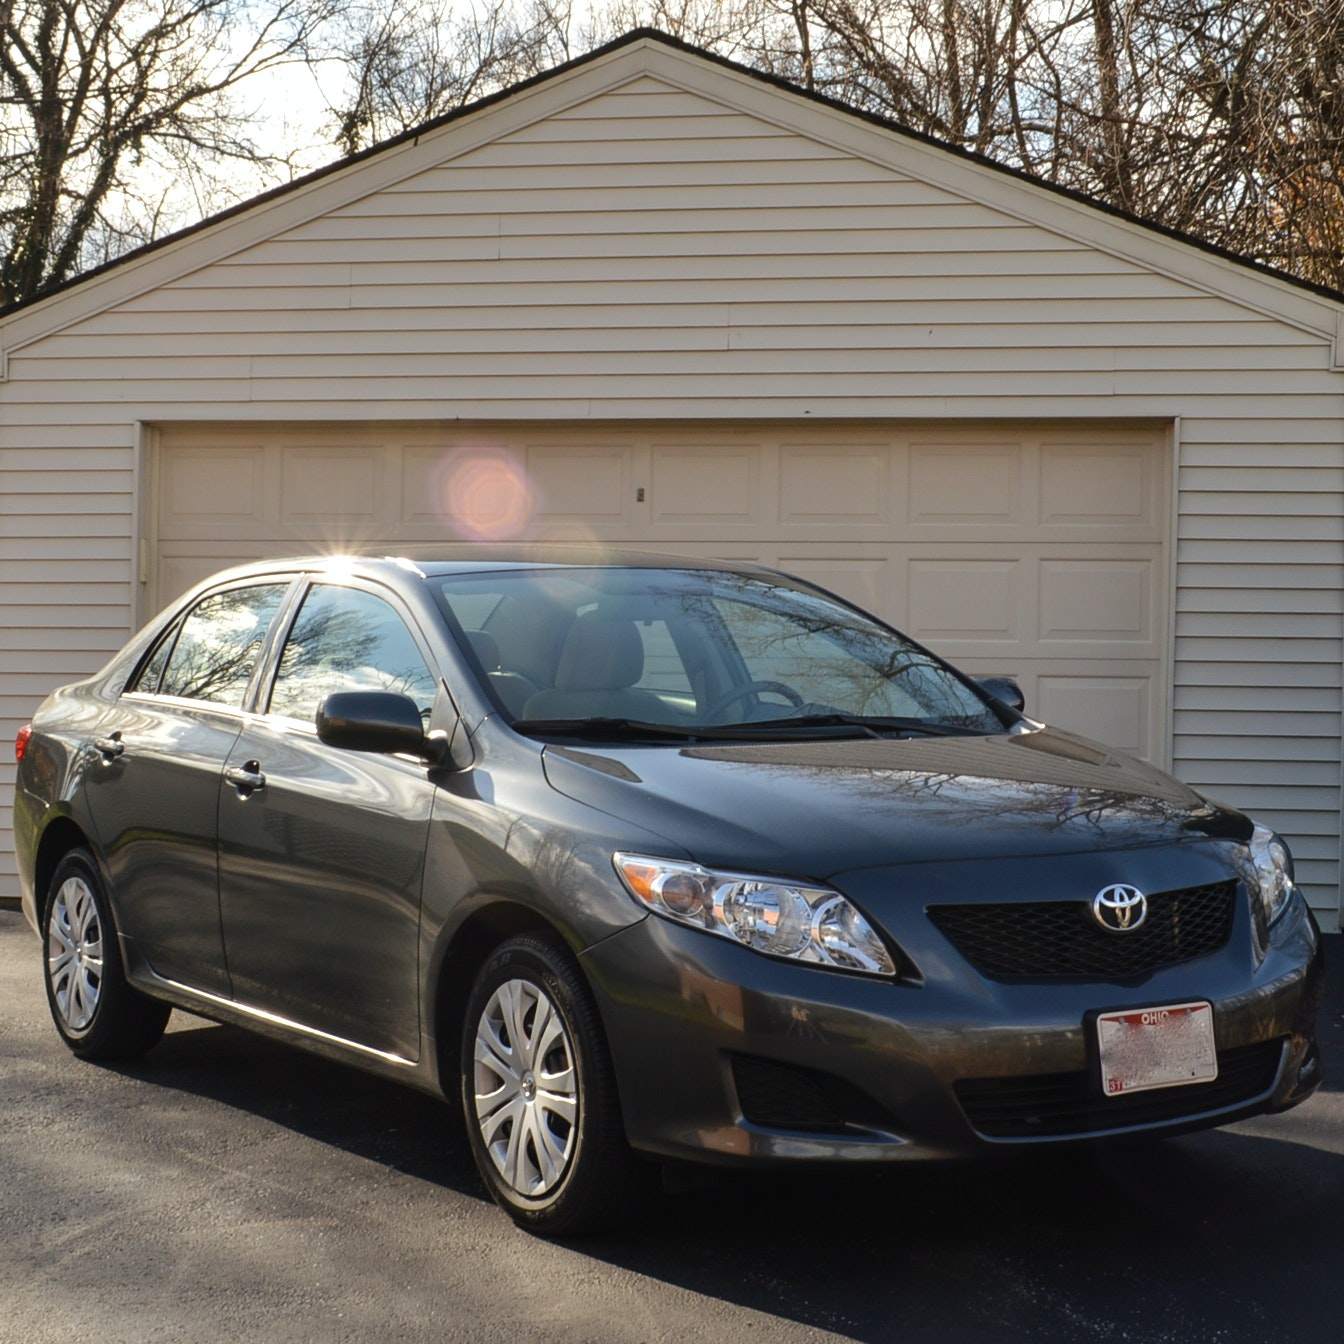 2010 Toyota Corolla LE 4-Door Sedan With 9,513 Original Miles